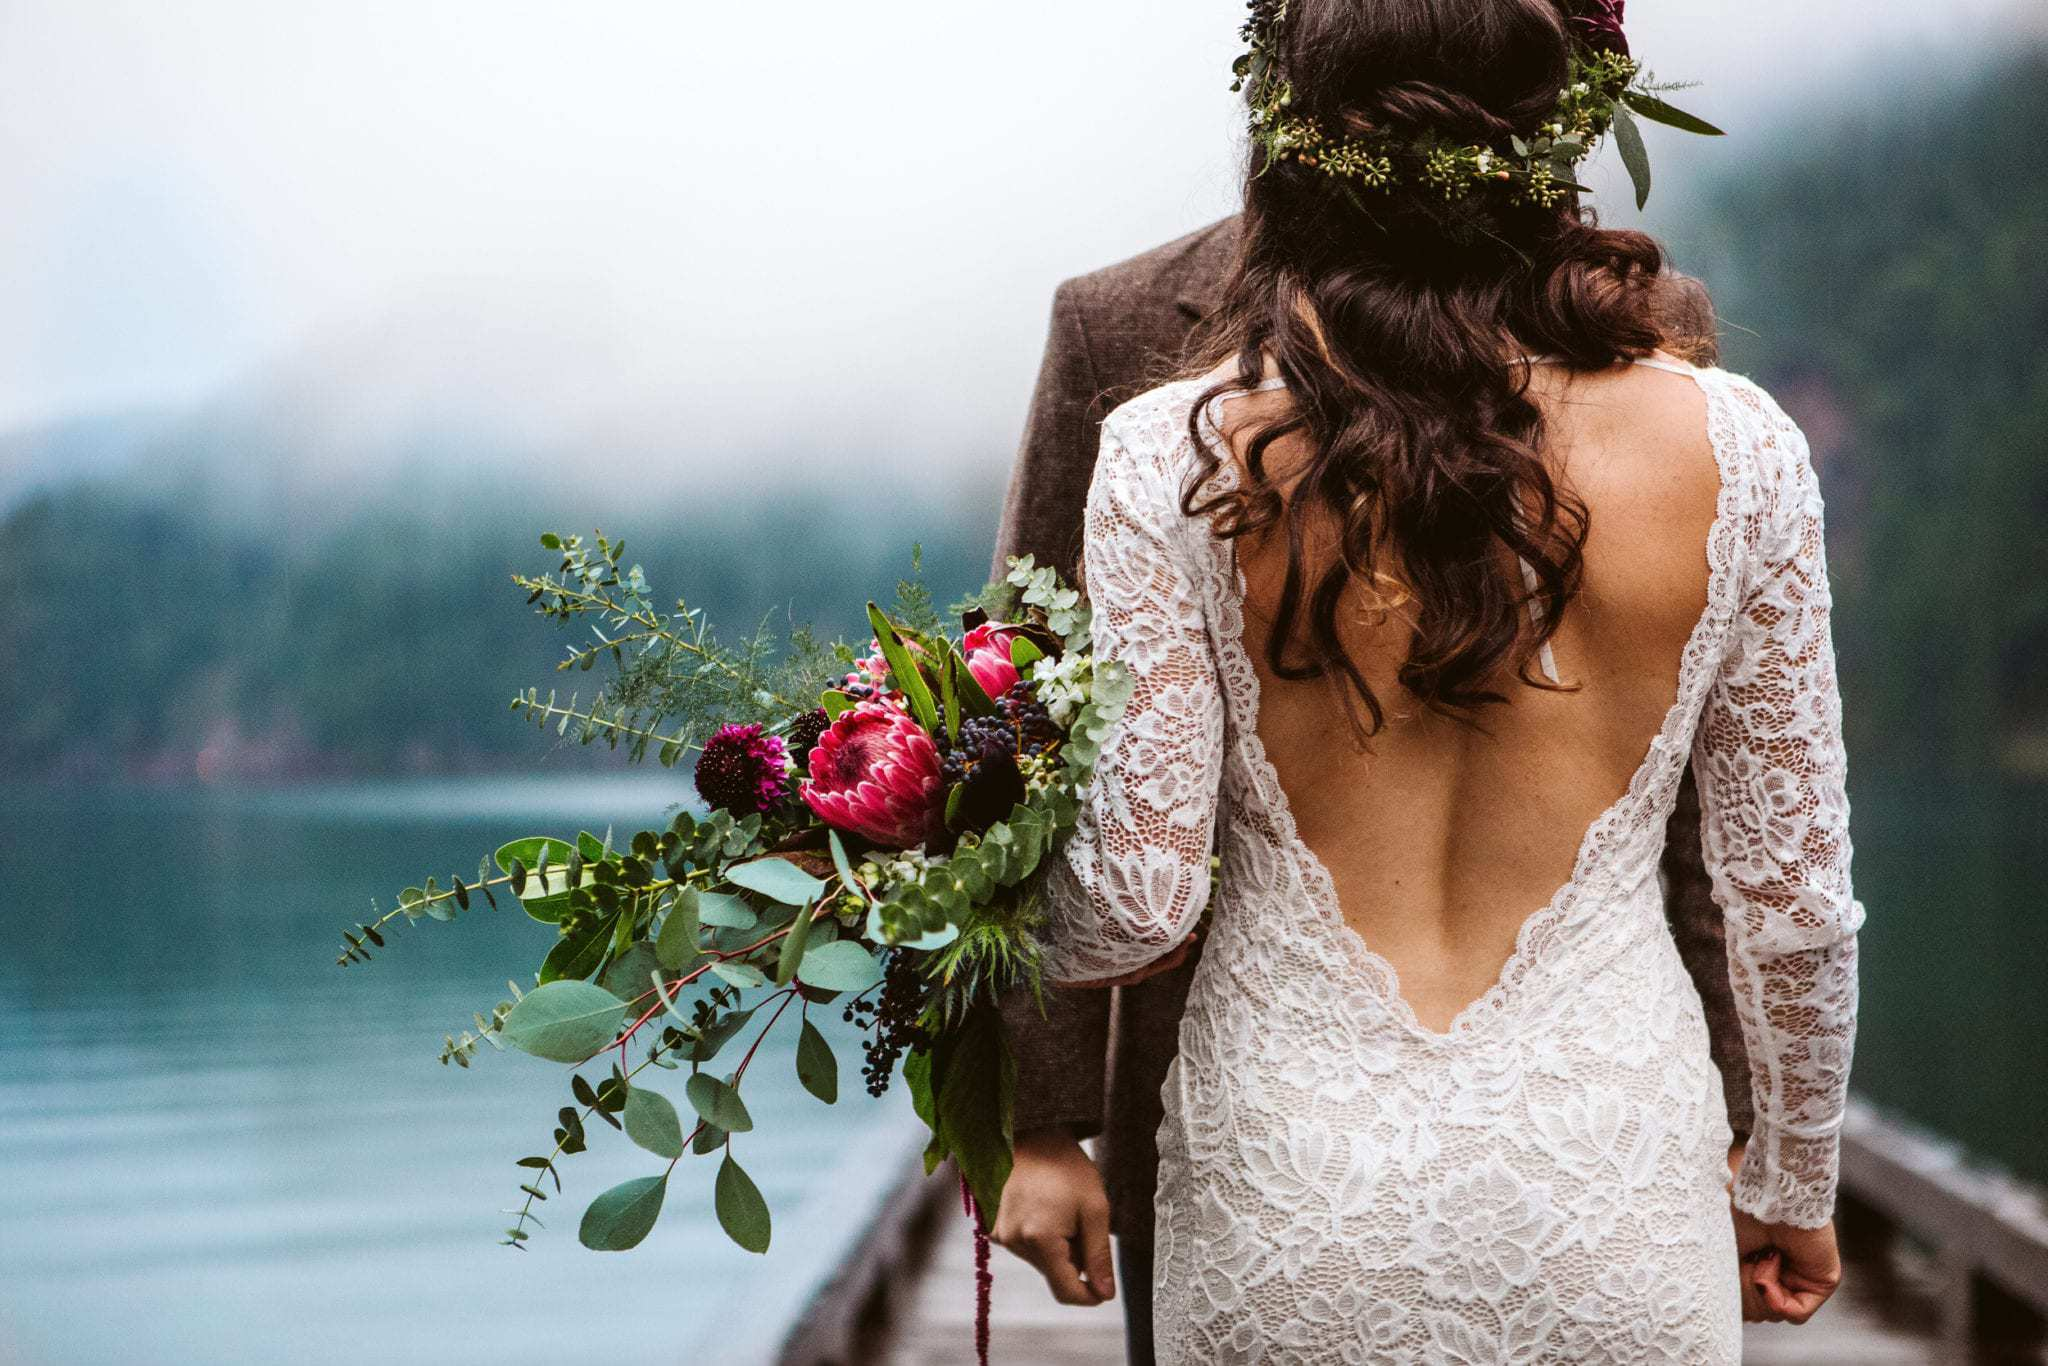 contest wedding details first place winner kate gansneder gsquared weddings seattle wedding photographer snohomish wedding lake crescent olympic national park elopement